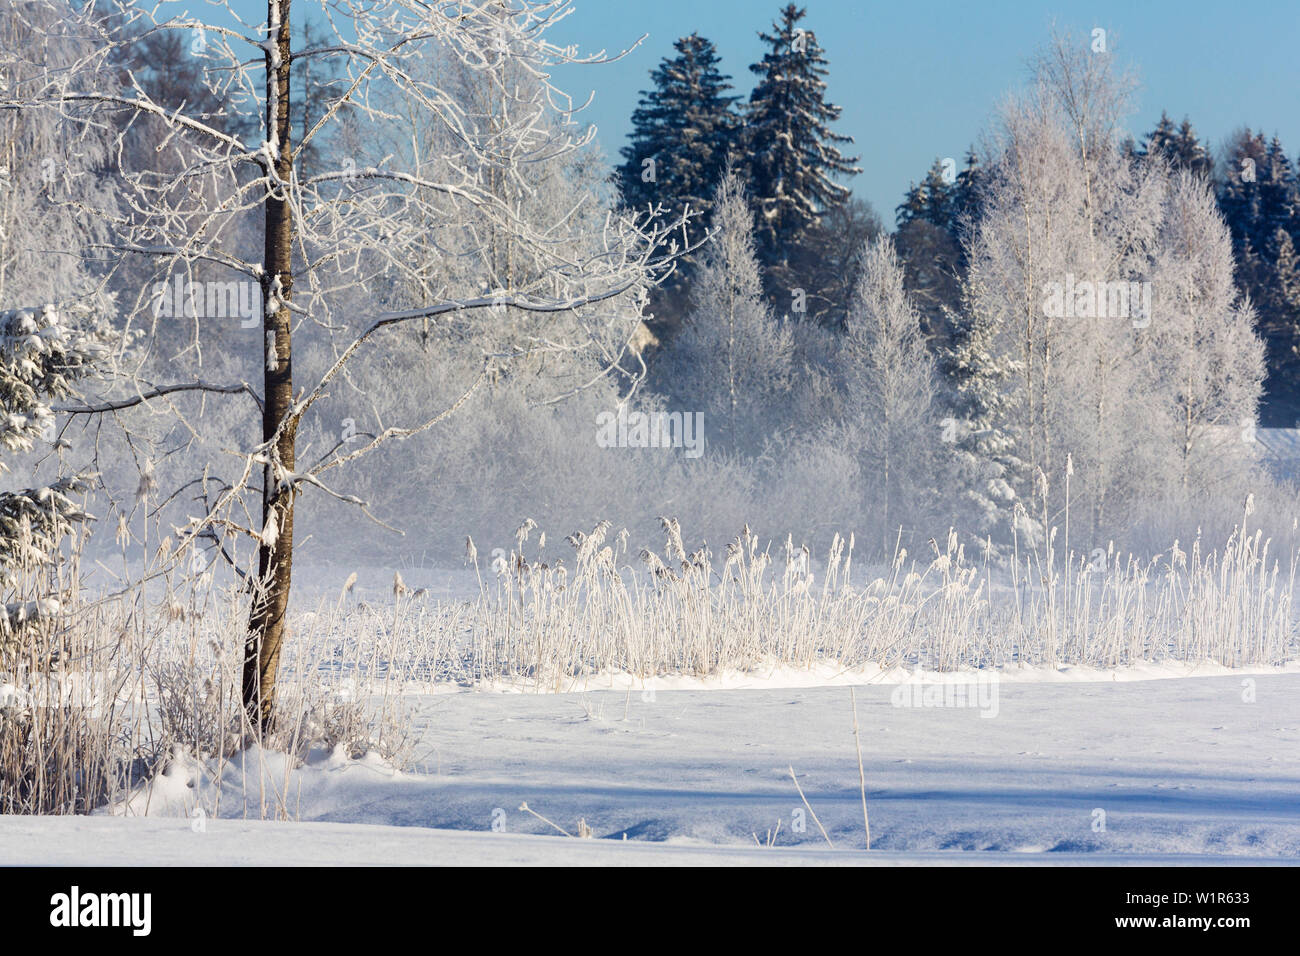 trees with whitefrost in winter, Upper Bavaria, Germany, Europe Stock Photo